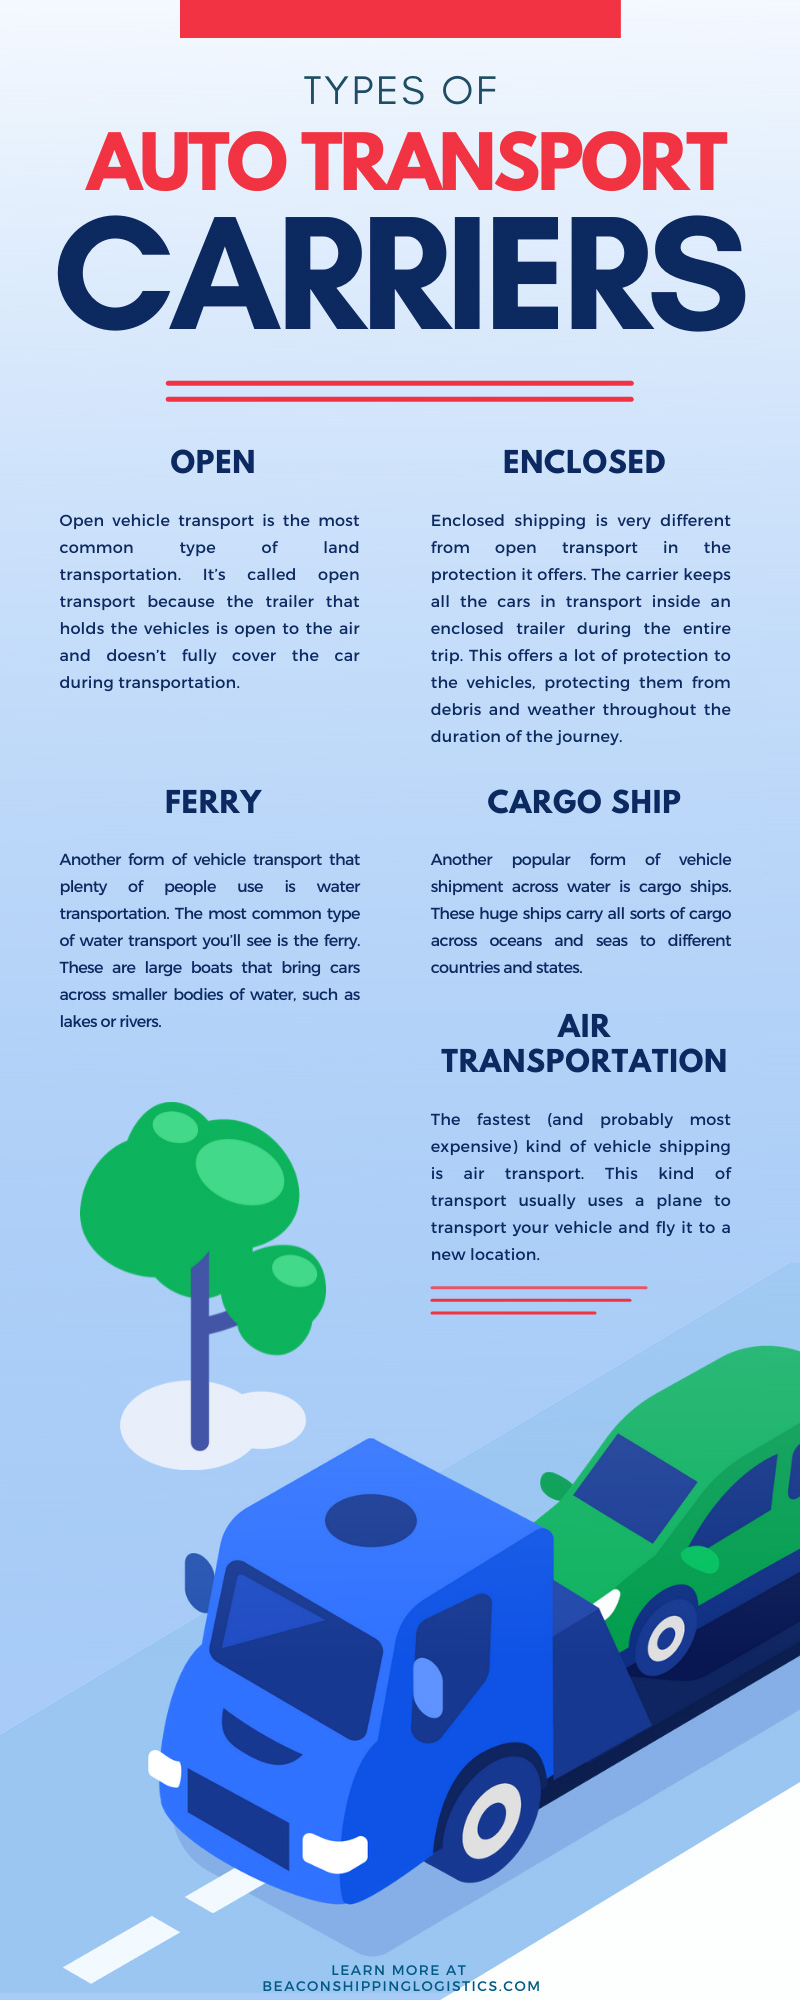 Types of Auto Transport Carriers